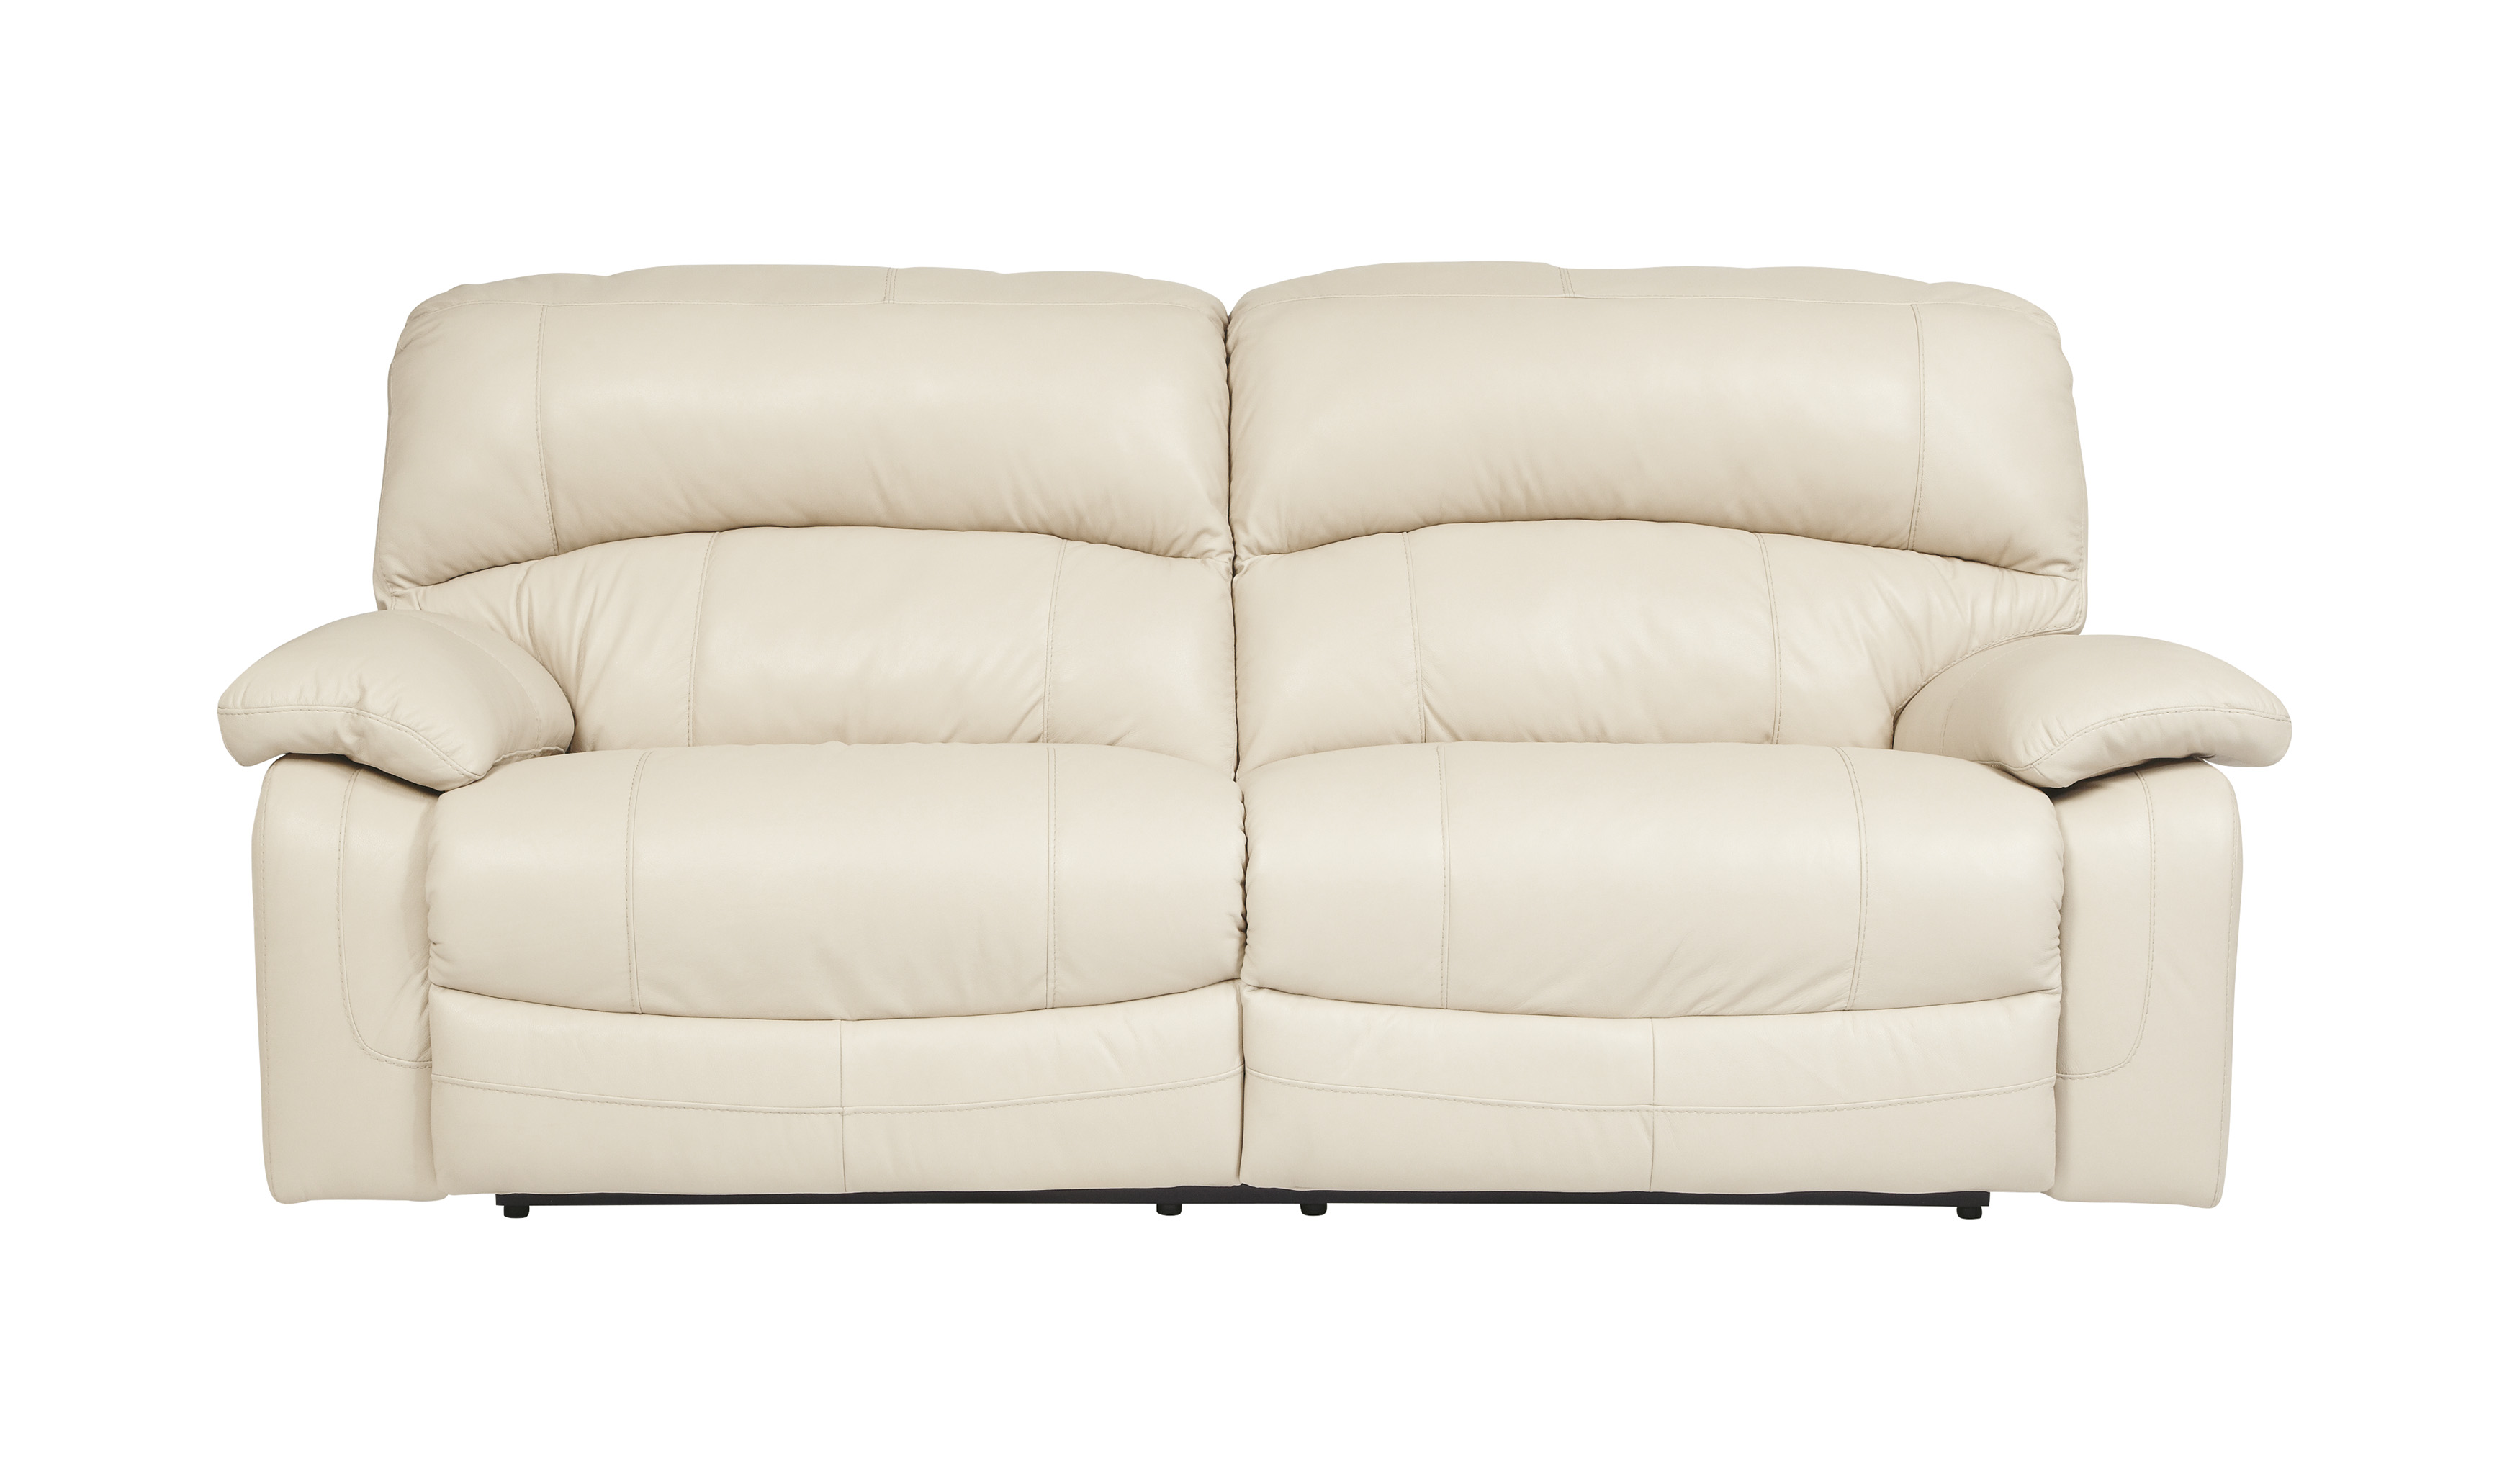 Fresh Cream Leather Sofa 36 For Your Contemporary Sofa Inspiration with Cream Leather Sofa